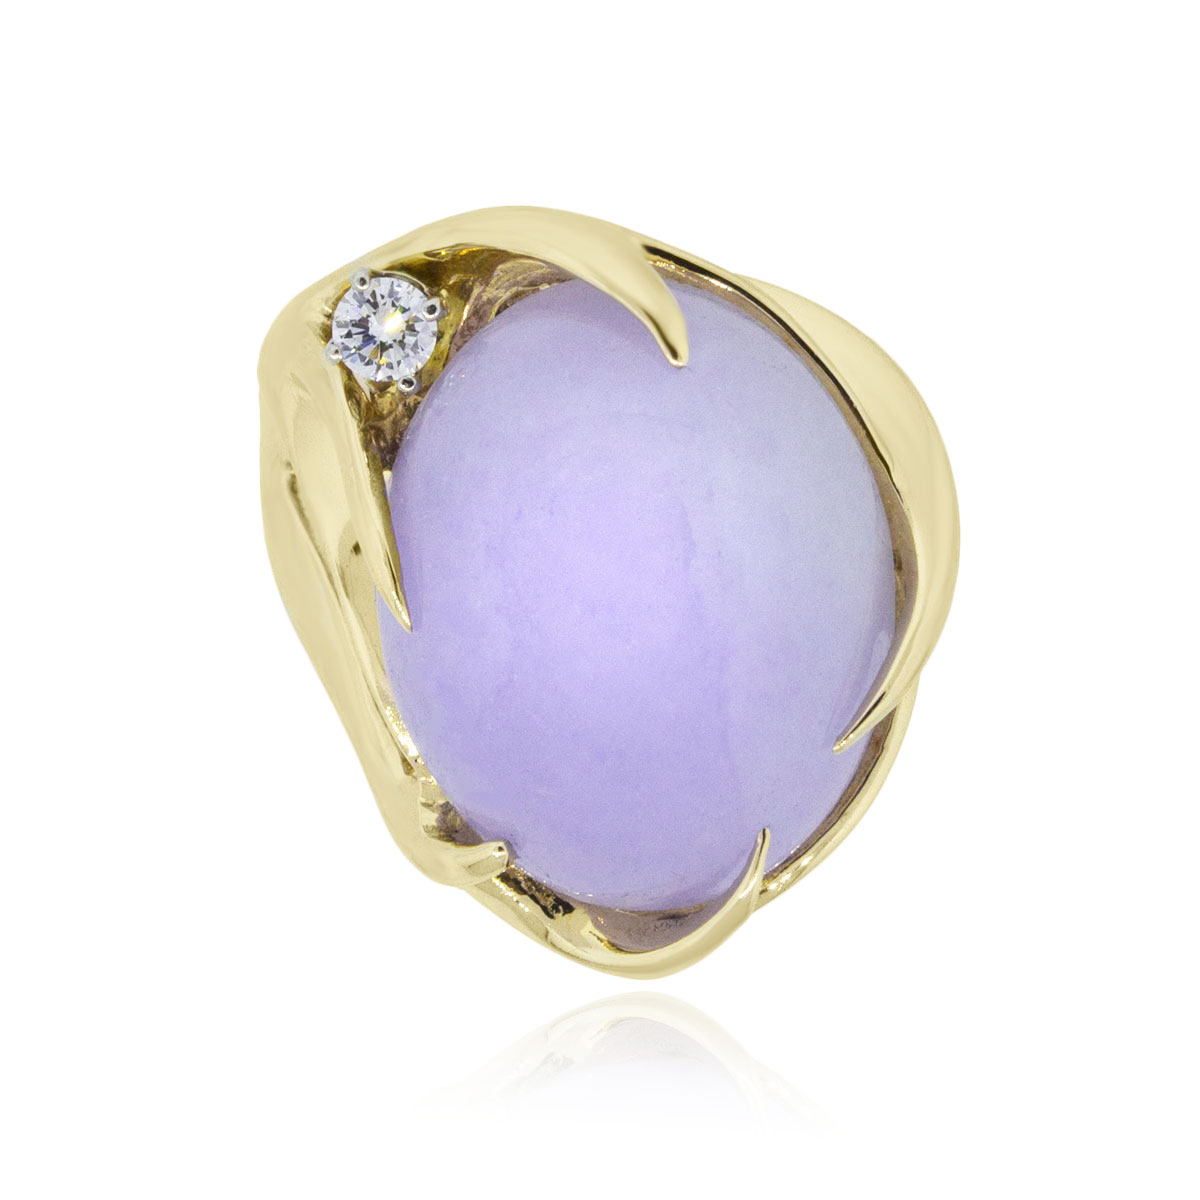 You are viewing this 14k Yellow Gold Oval Cabochon Lavender Jade and Diamond Ring!